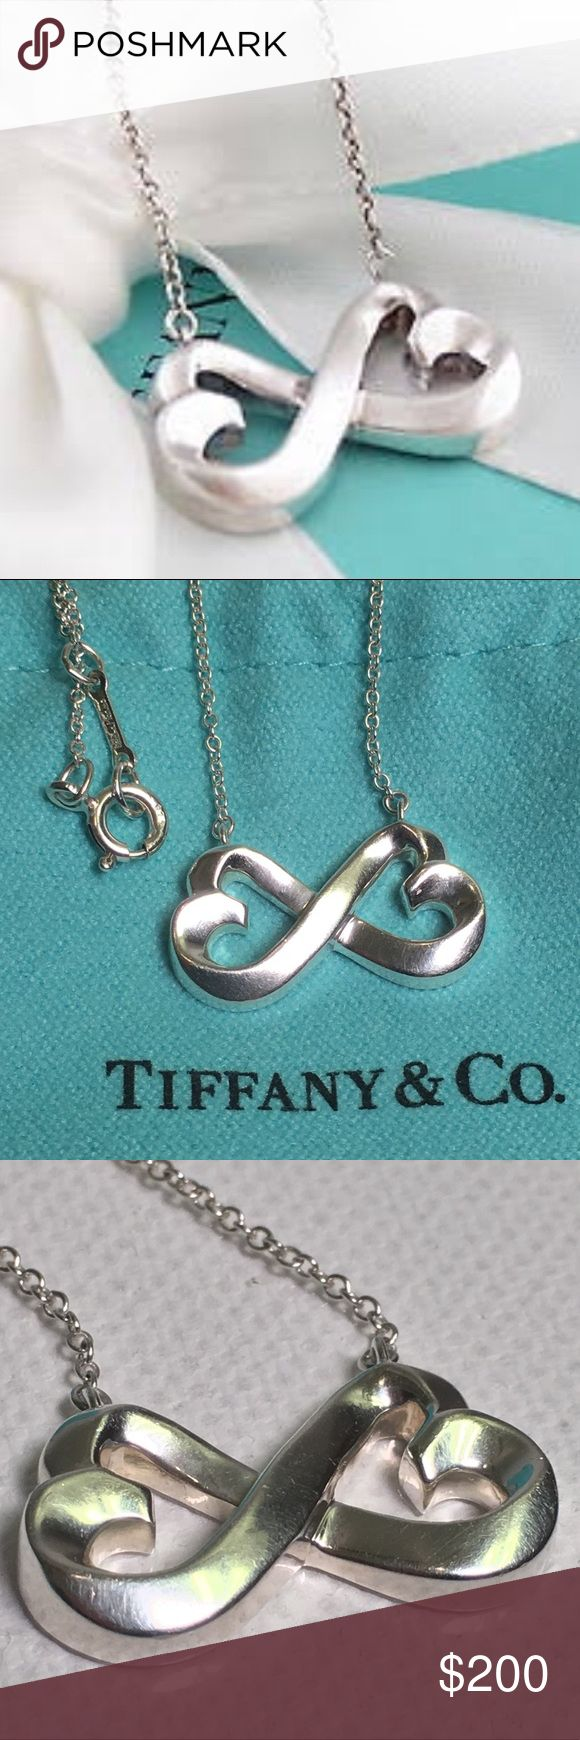 Tiffany & Co. Paloma Picasso Double Heart Necklace Tiffany & Co. Paloma Picasso Double Loving Heart Silver Pendant Necklace 100% AUTHENTIC Combining the magic of double Loving Hearts to form an Infinity sign, this Tiffany & Co. design is made for the special person in your life. Crafted from sterling silver, this pendant necklace as a lobster claw clasp.  Includes: Bag   Hardware: Silver-tone  Material: Silver 925  Necklace Total Length: 42 CM  Pendant Length: 1 CM  Pendant Width: 2 CM…